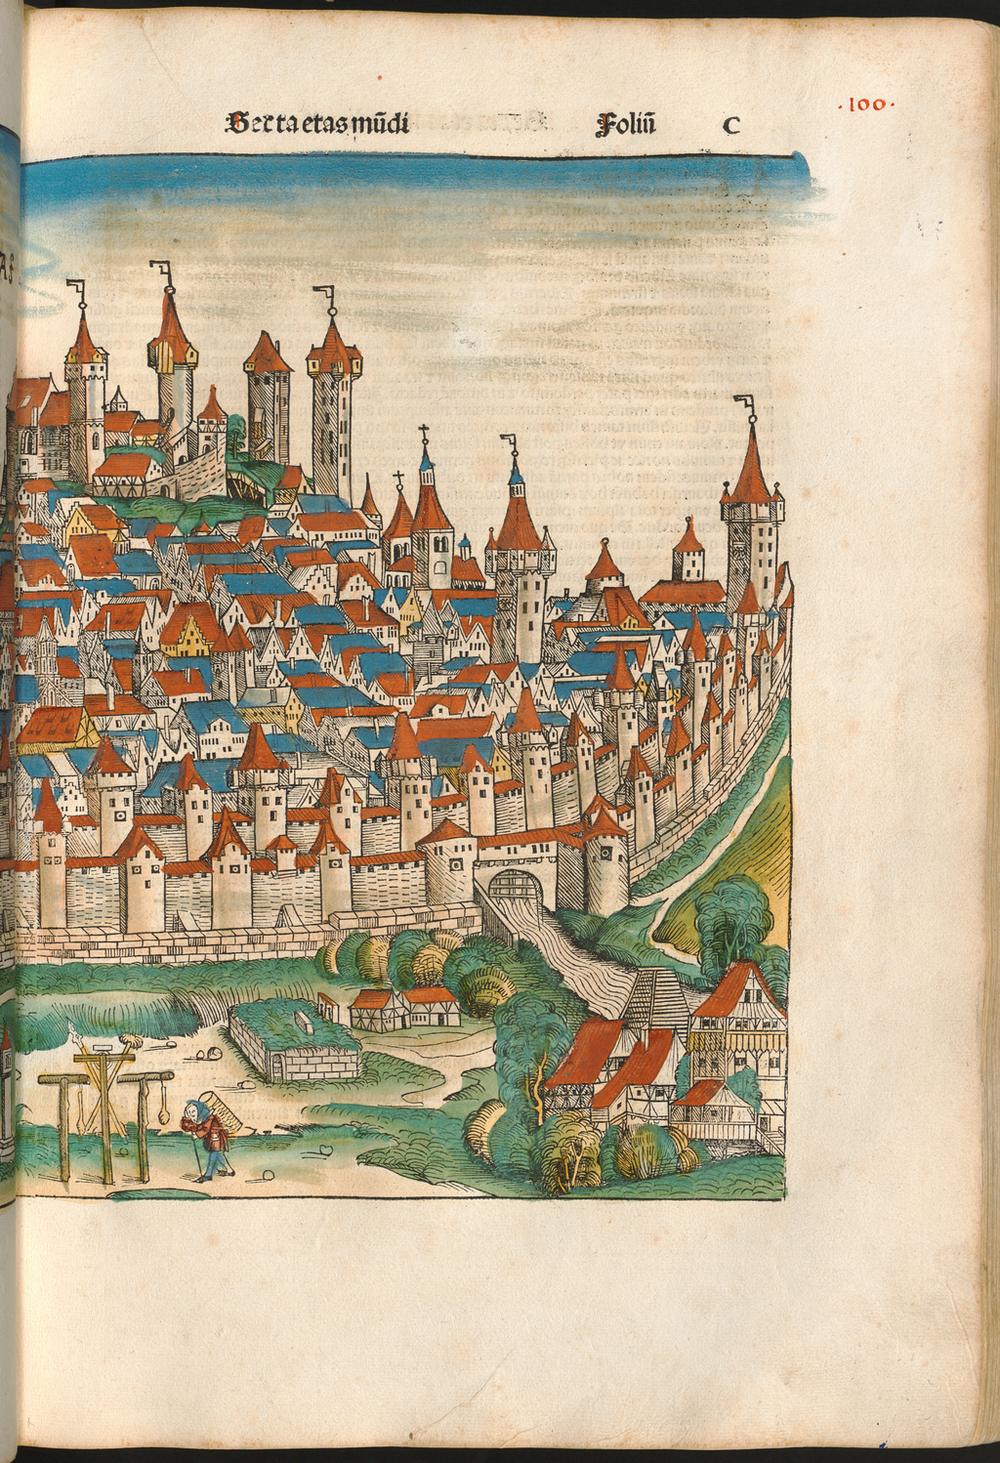 Figure 2b: Nuremberg cityscape from the Nuremberg Chronicle, hand-colored woodcut, 1493, folio 100 recto